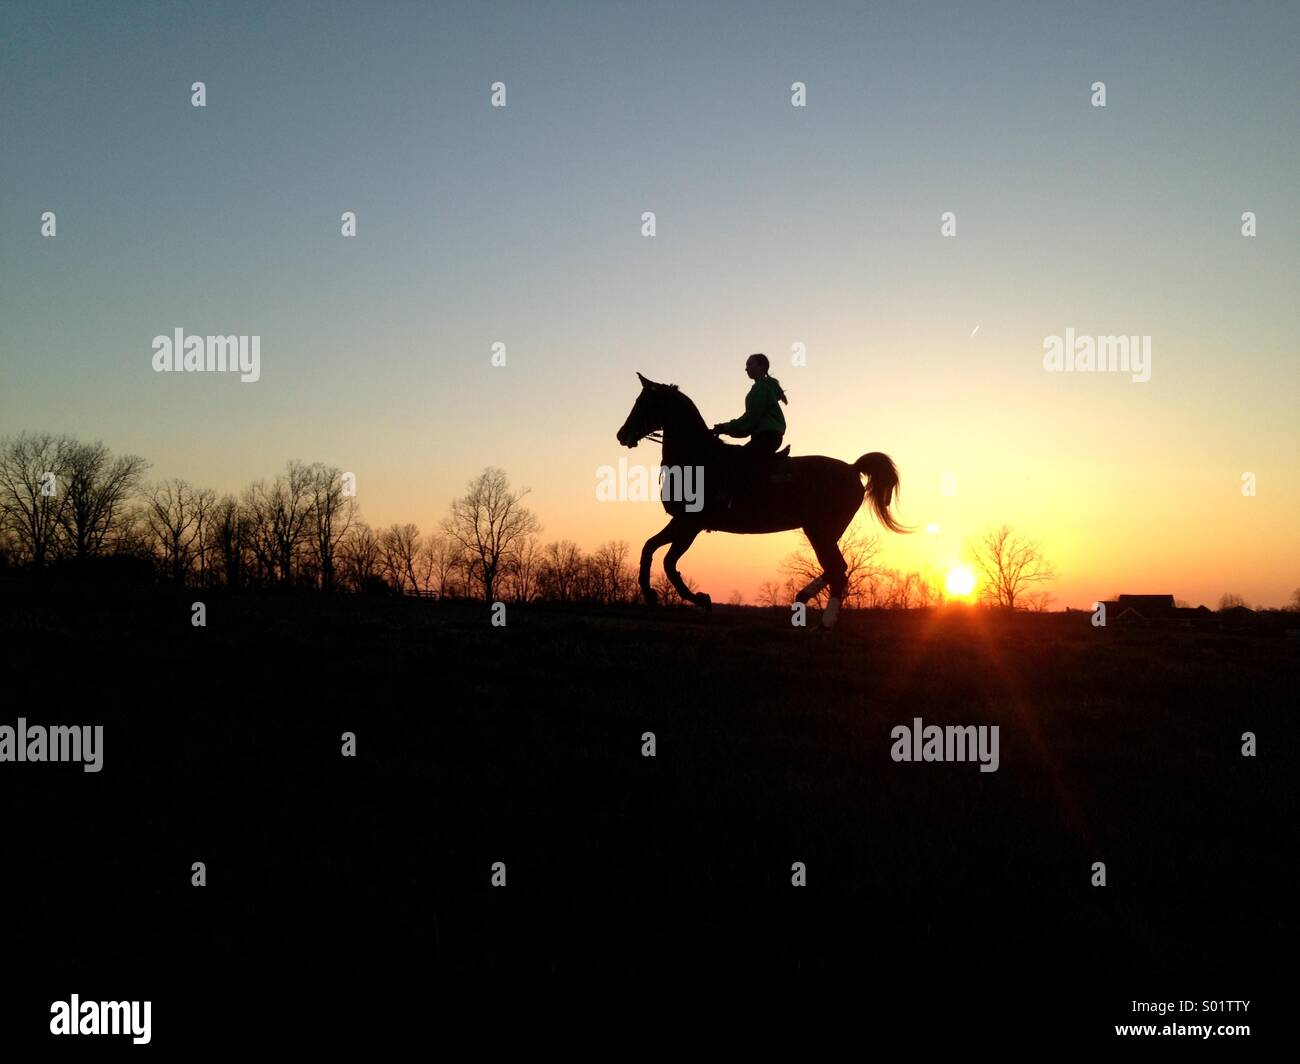 Girl riding horse in sunset - Stock Image